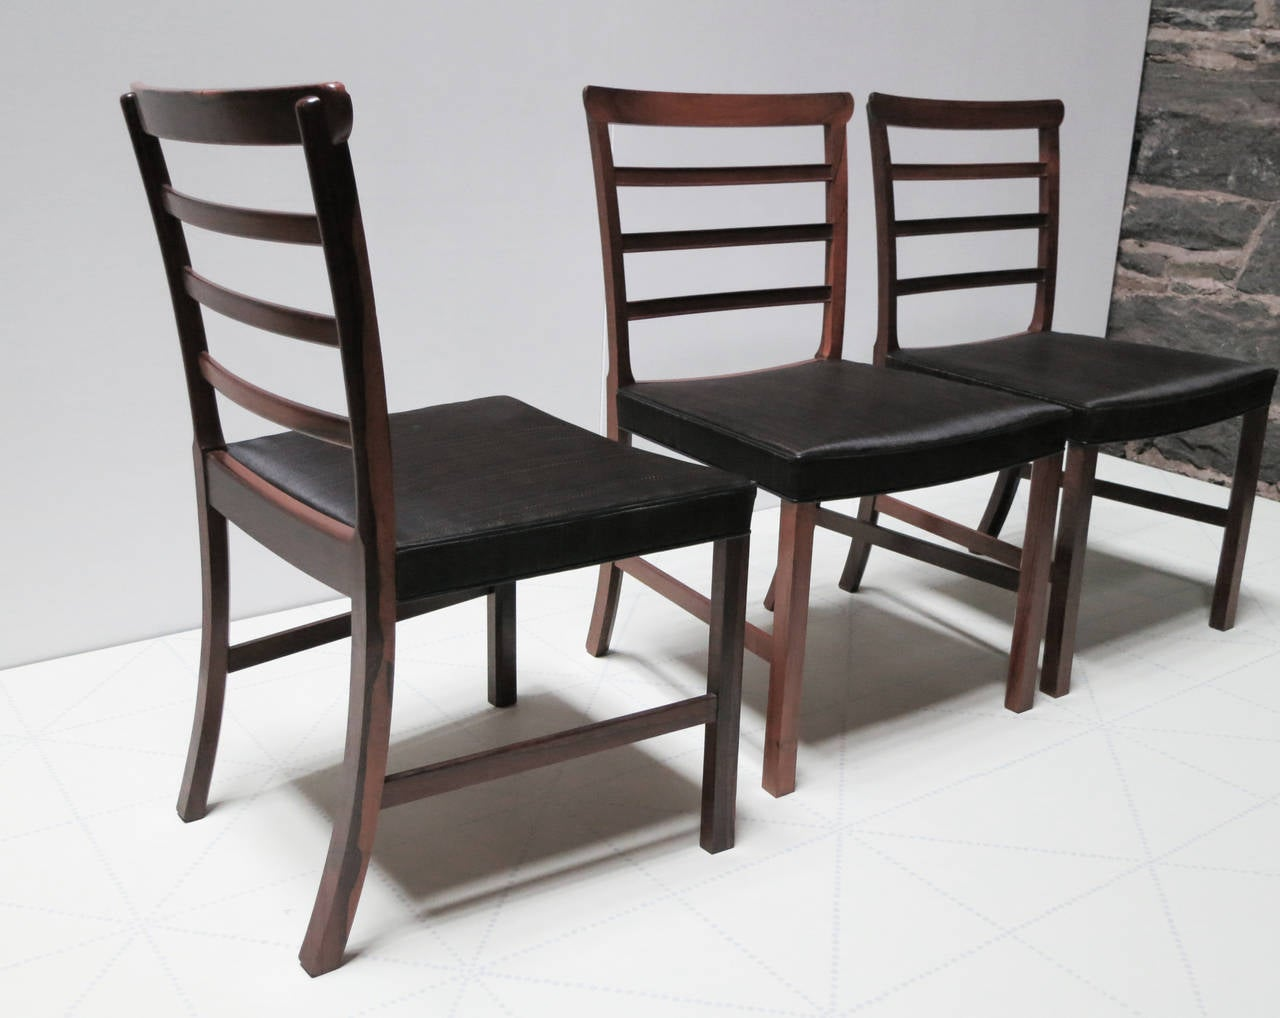 Scandinavian Modern Set of Eight Brazilian Rosewood and Horsehair Dining Chairs by Ole Wanscher For Sale